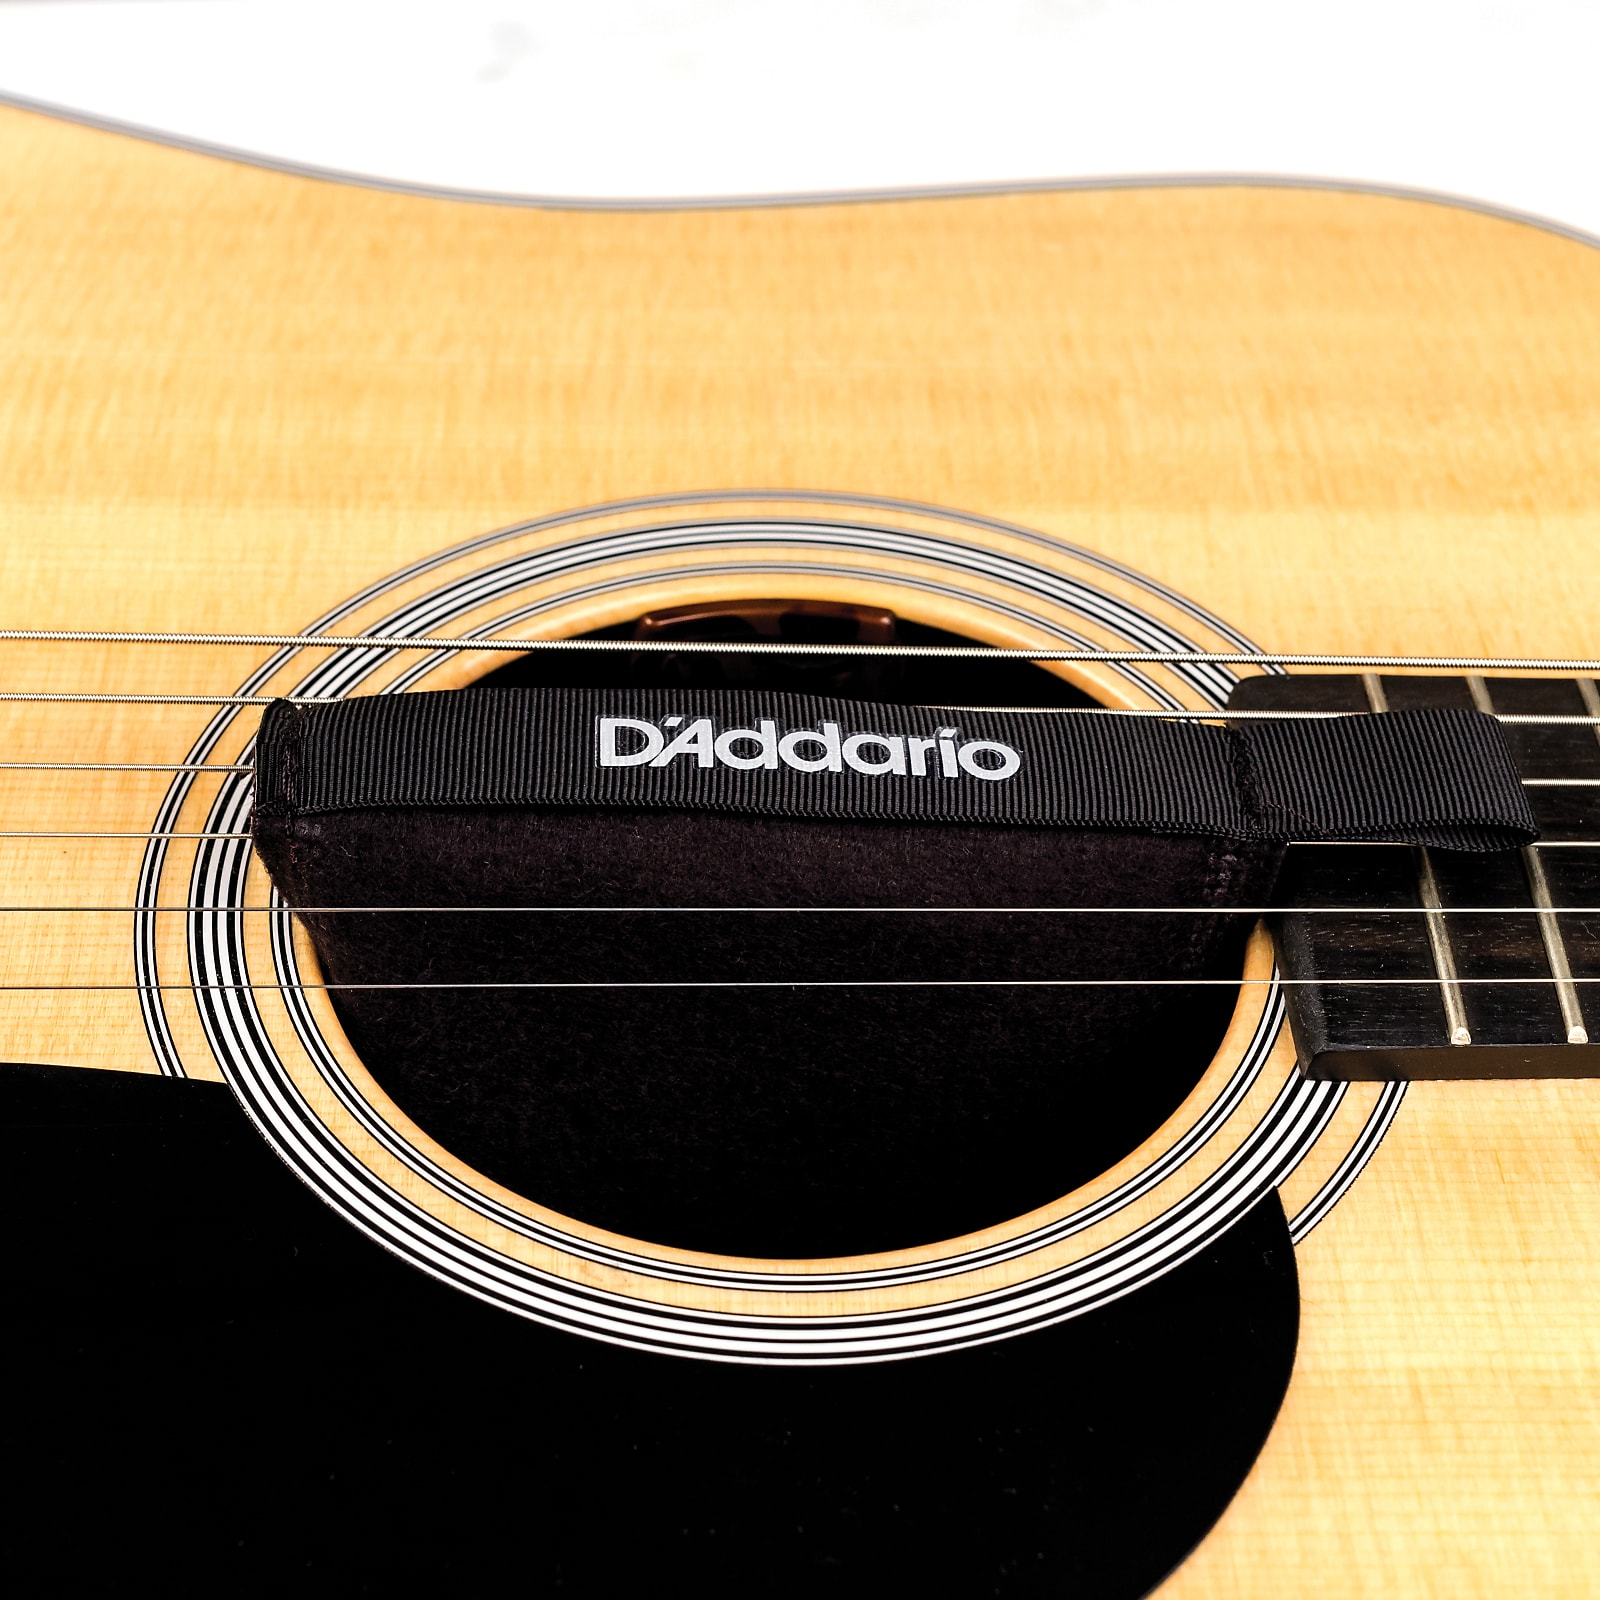 D'Addario Humidipak Automatic Humidity Control System (for guitar)